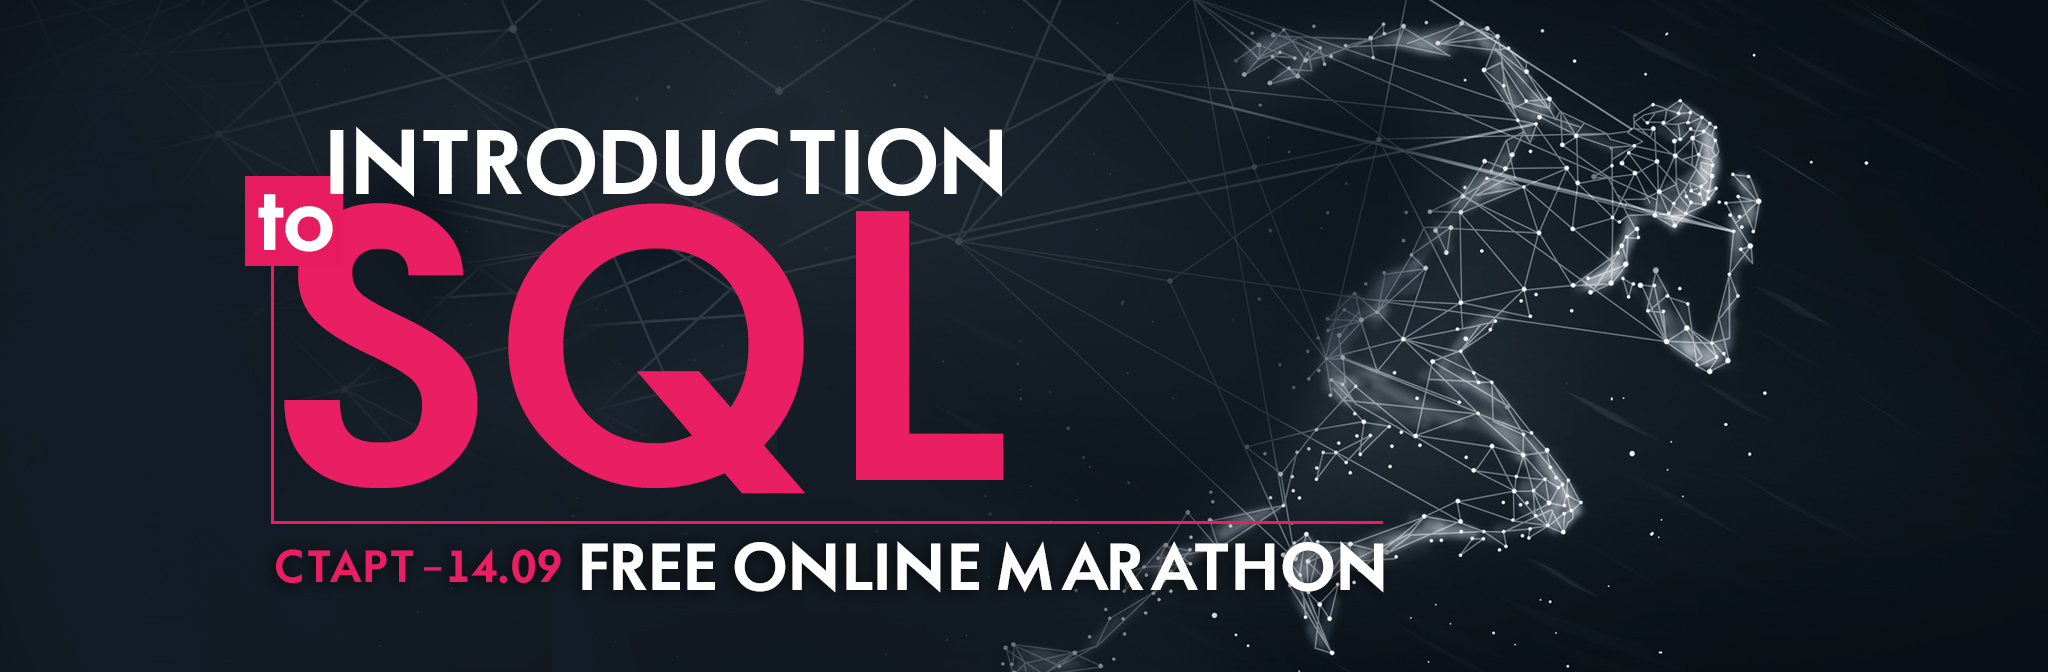 Introduction to SQL Free Marathon